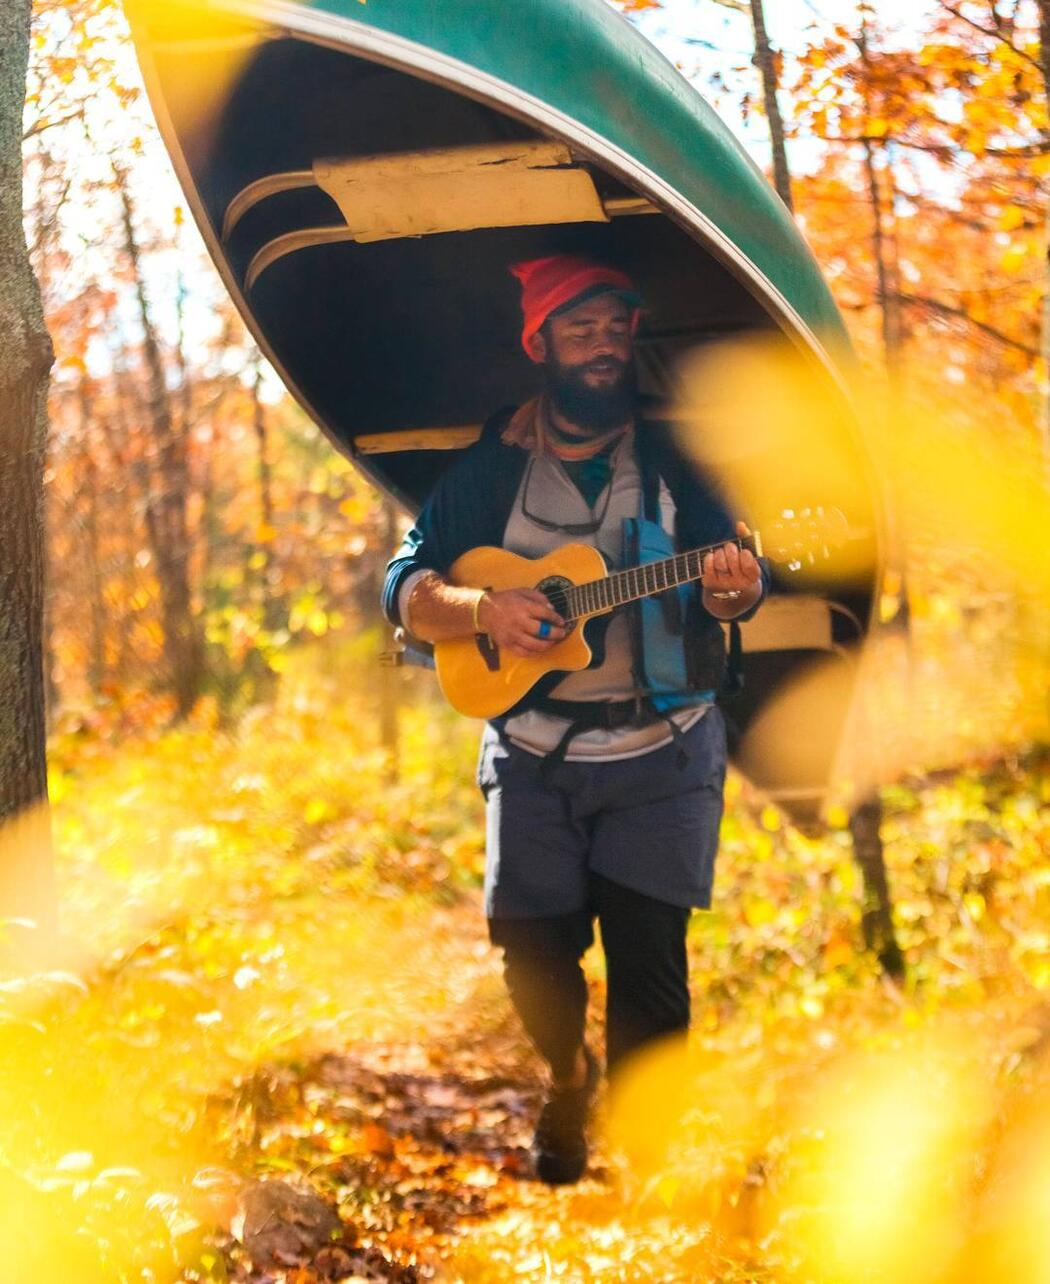 Man strumming on a guitar while portaging a green canoe on his head.